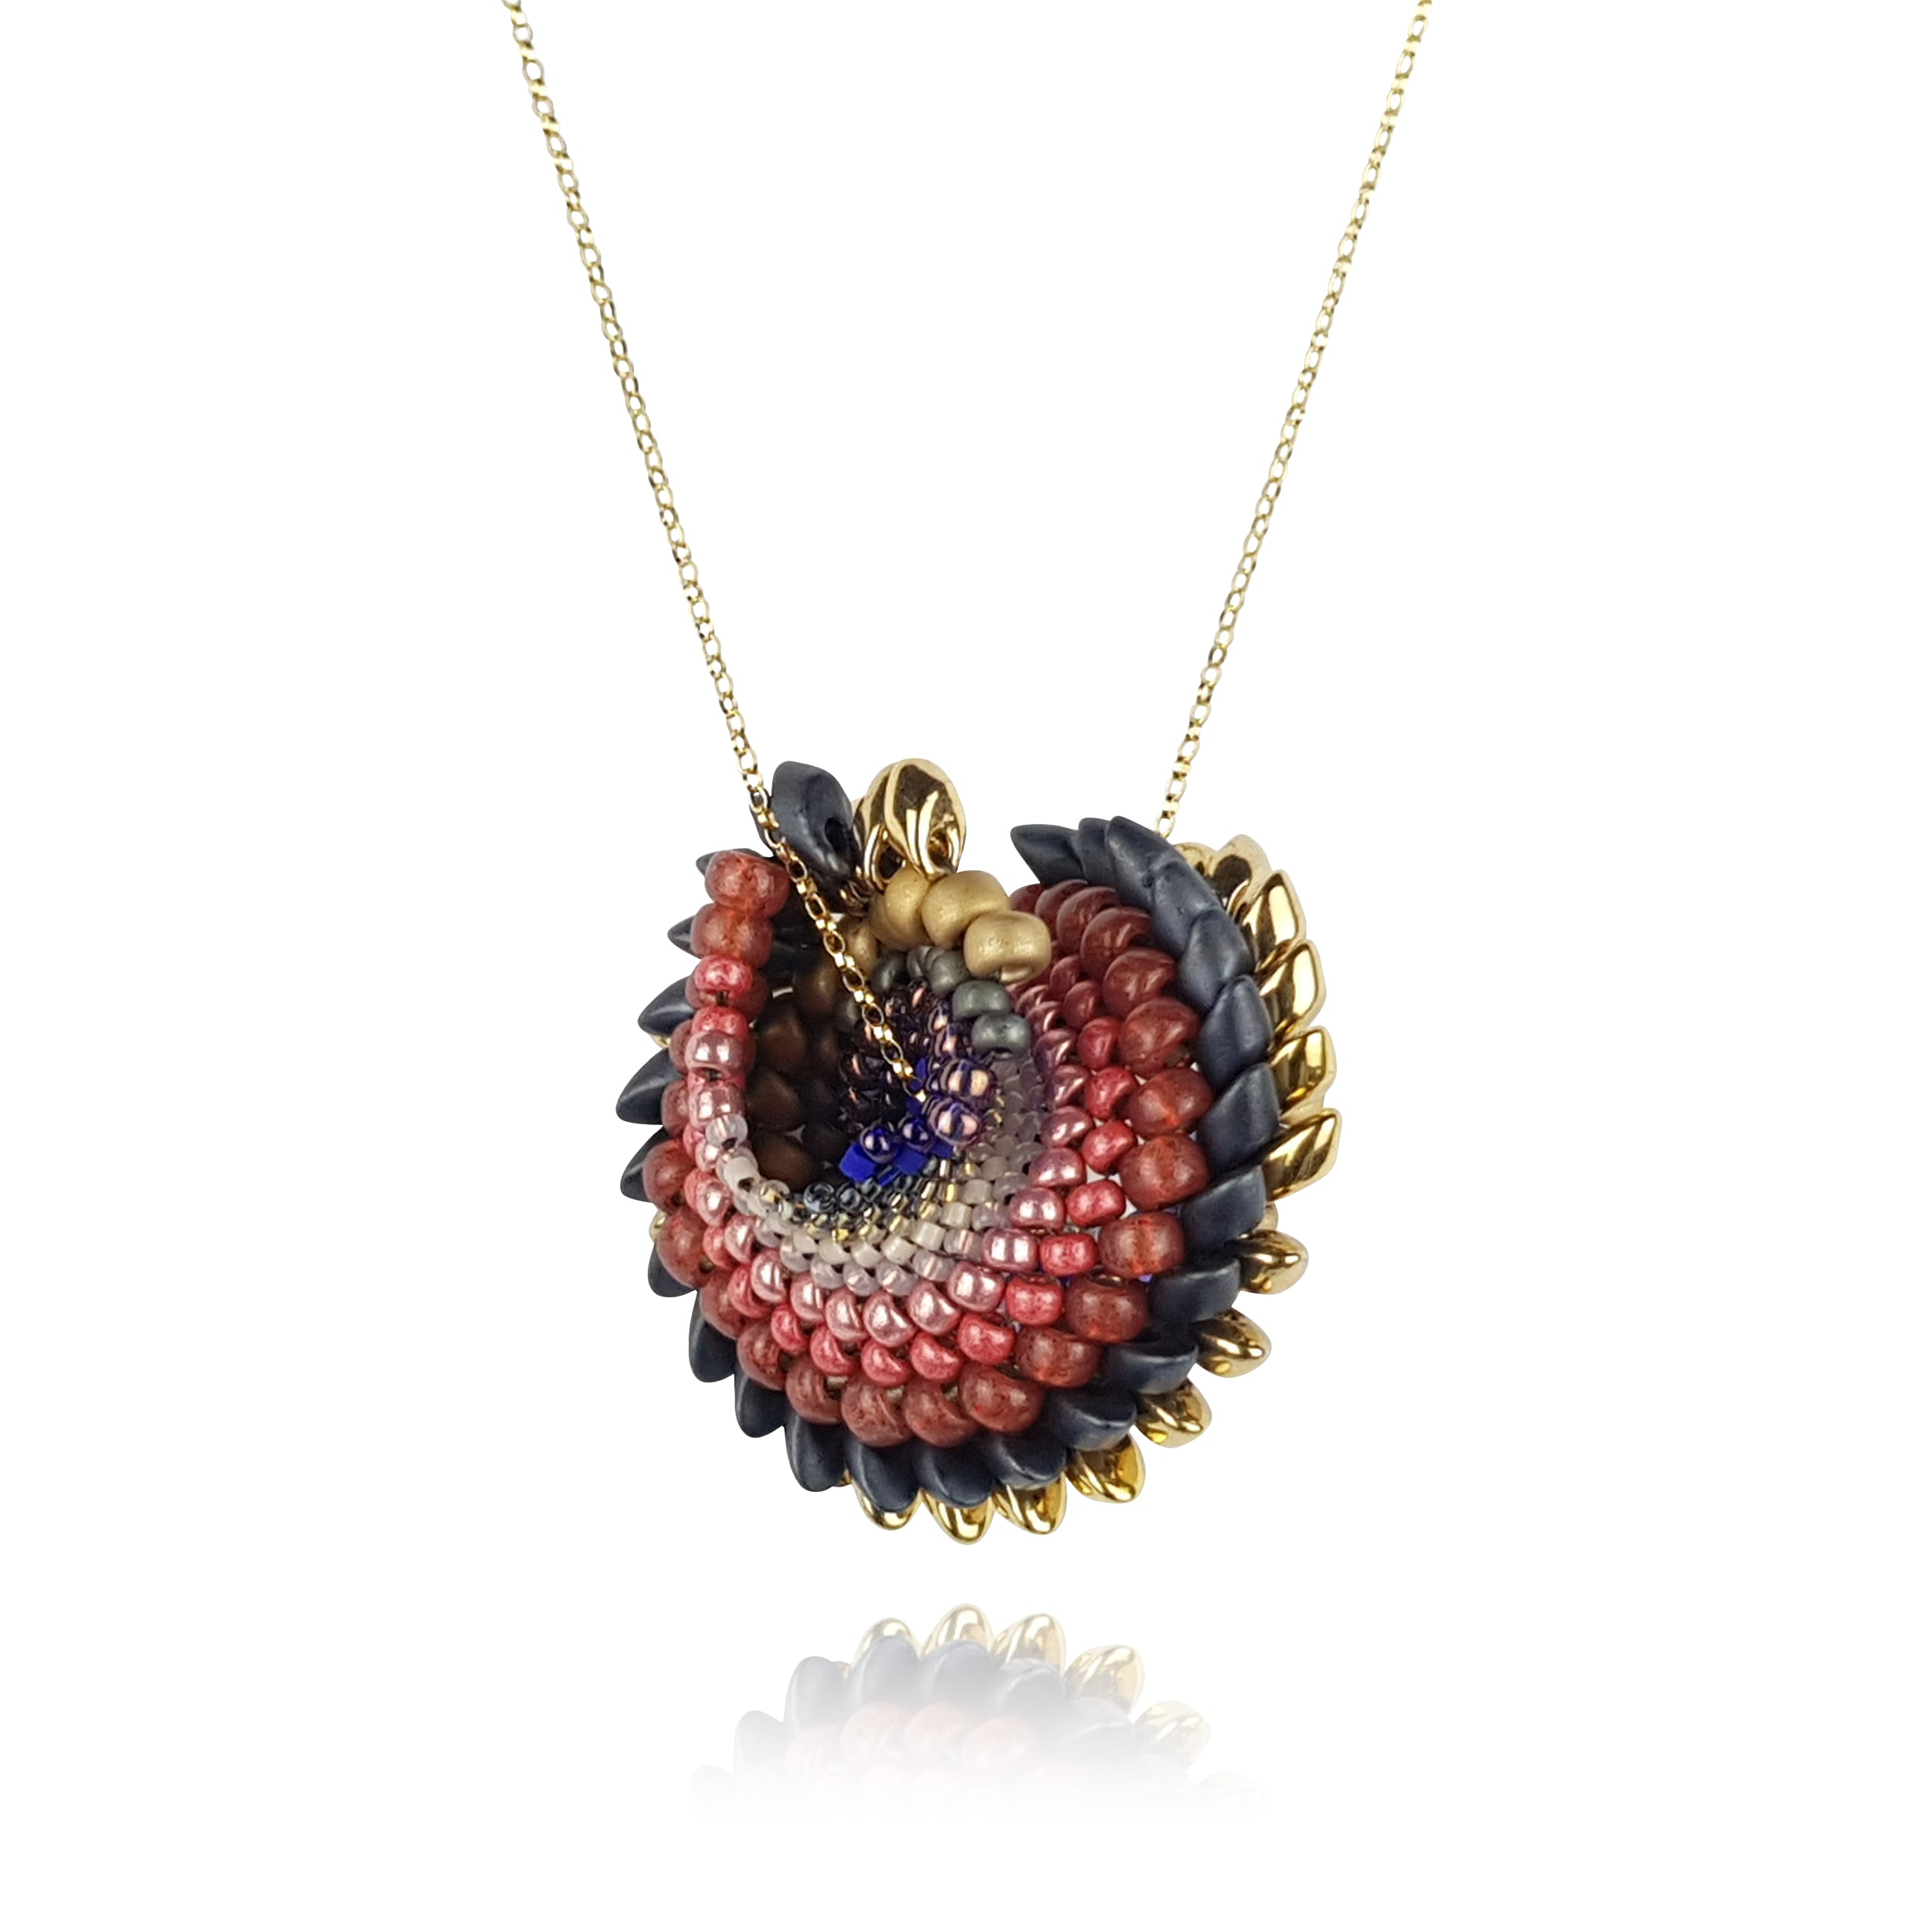 To Have And To Hold Necklace - Cranberry & Gold